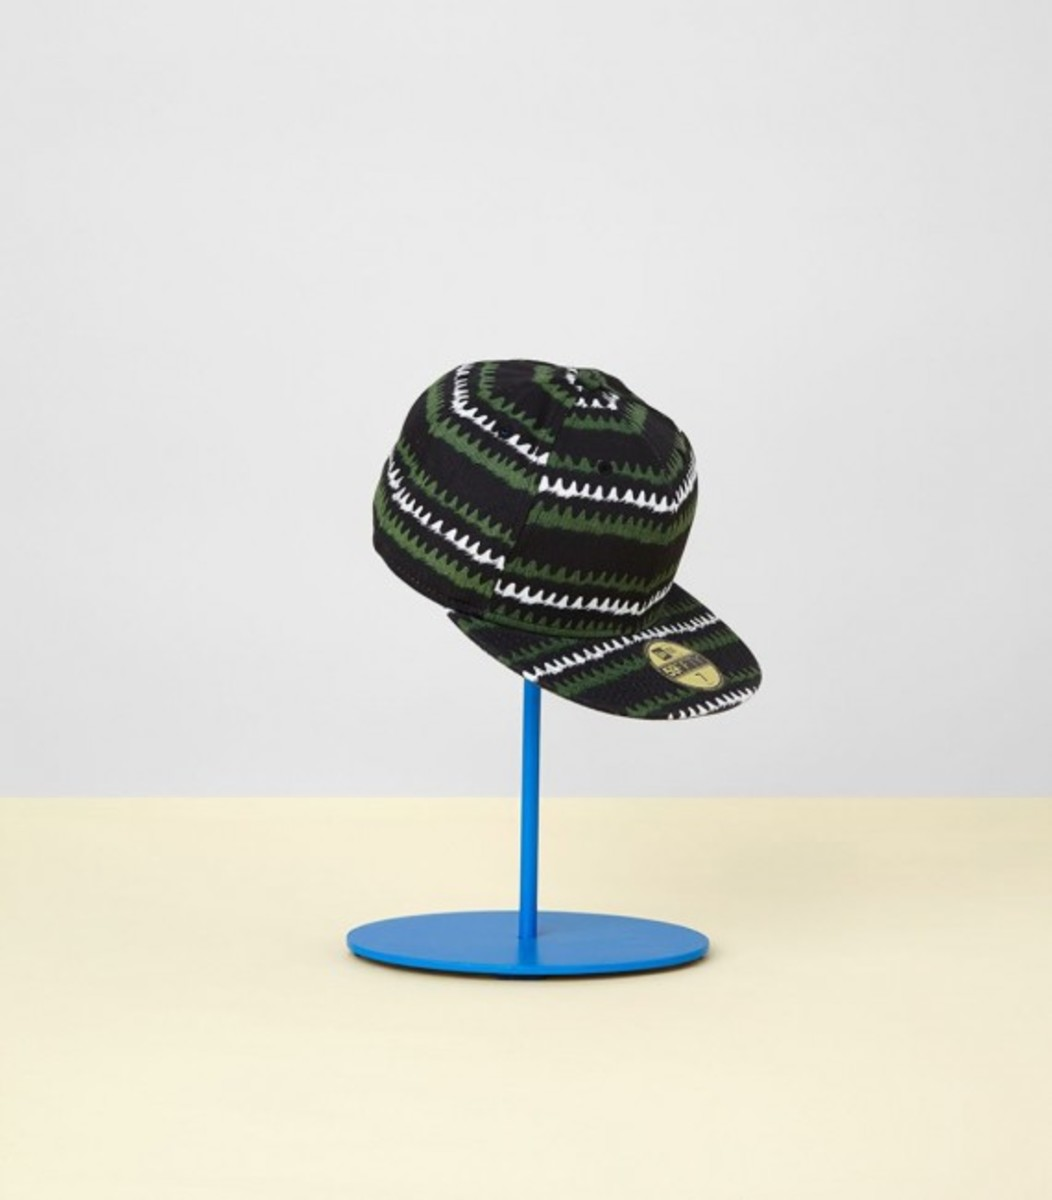 kenzo-new-era-spring-summer-2013-cap-collection-08